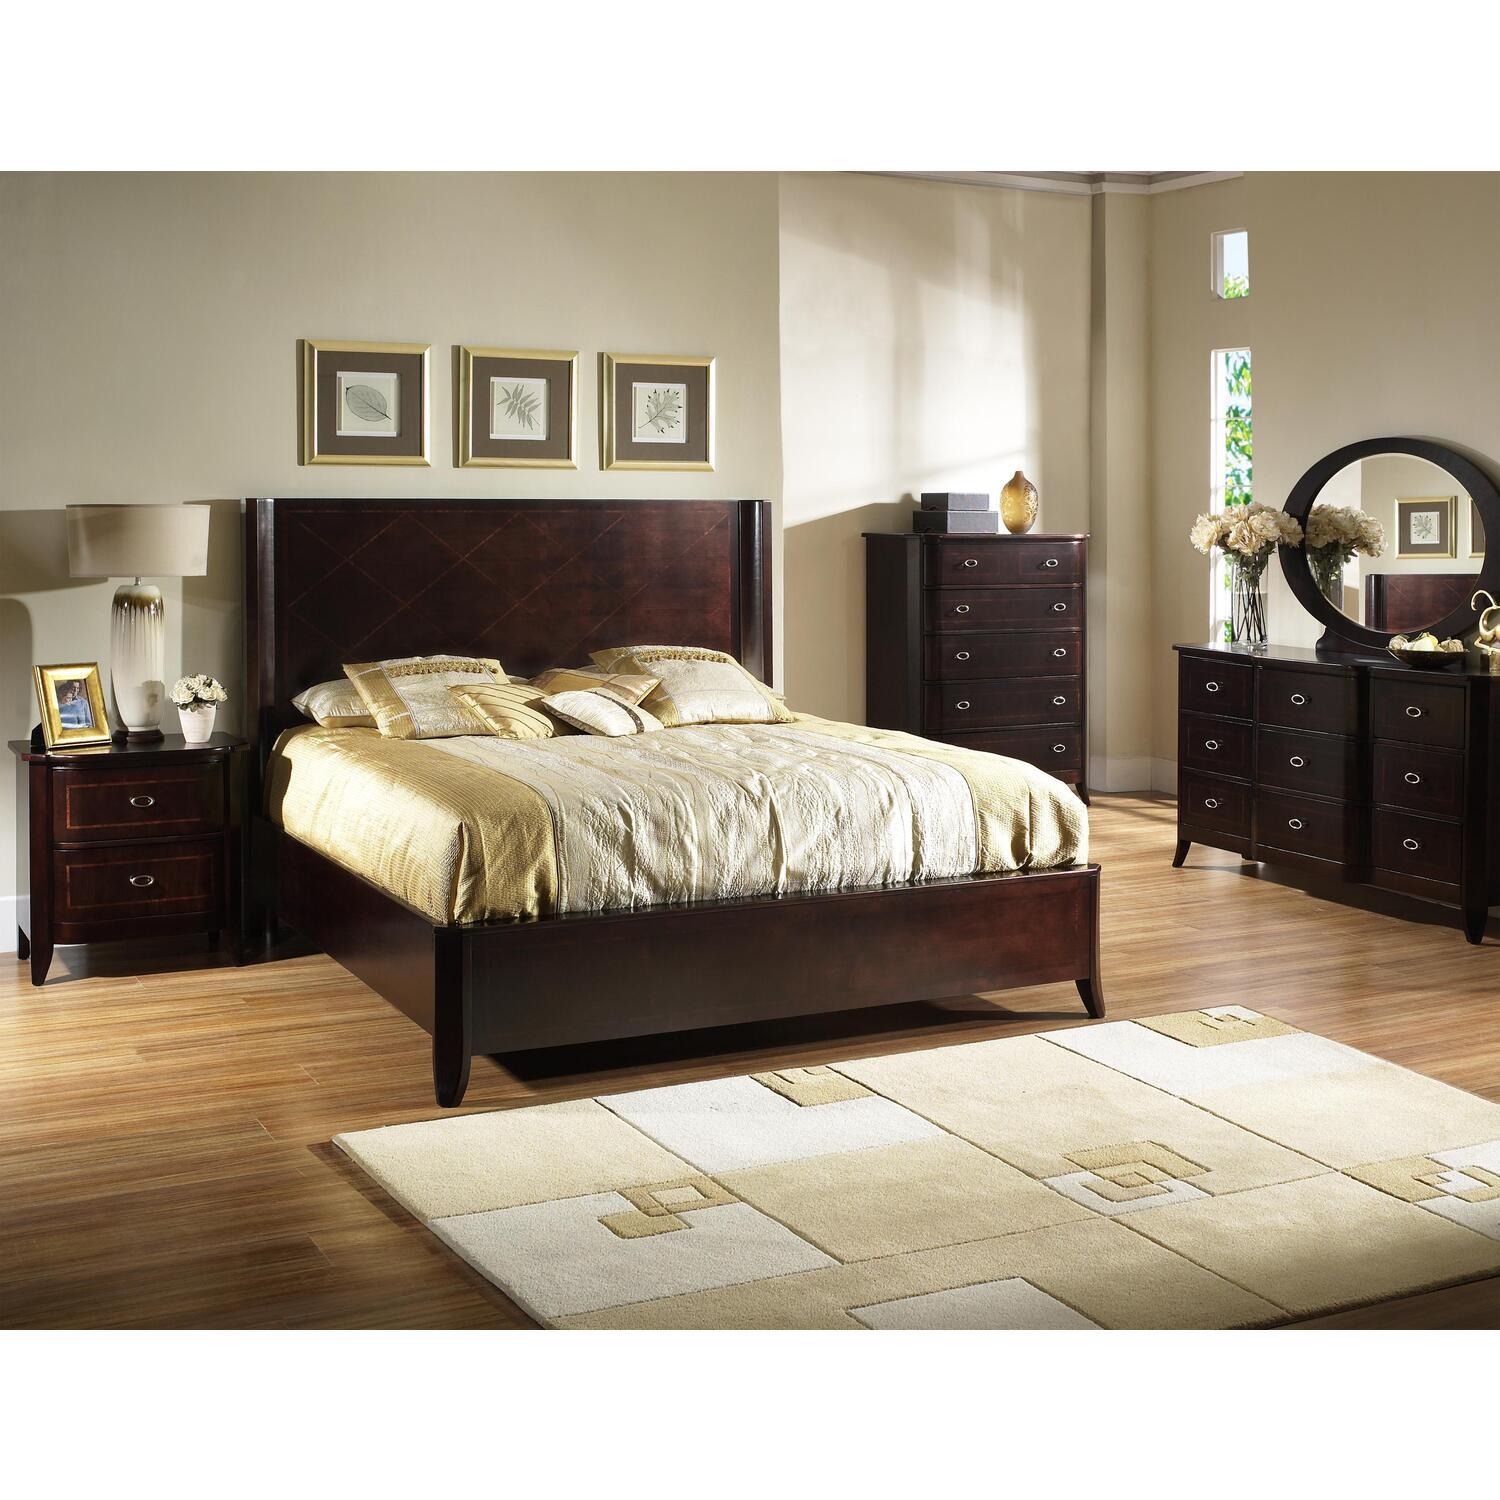 Dark Wooden Bed ~ Somerton crossroads king panel bed by oj commerce p